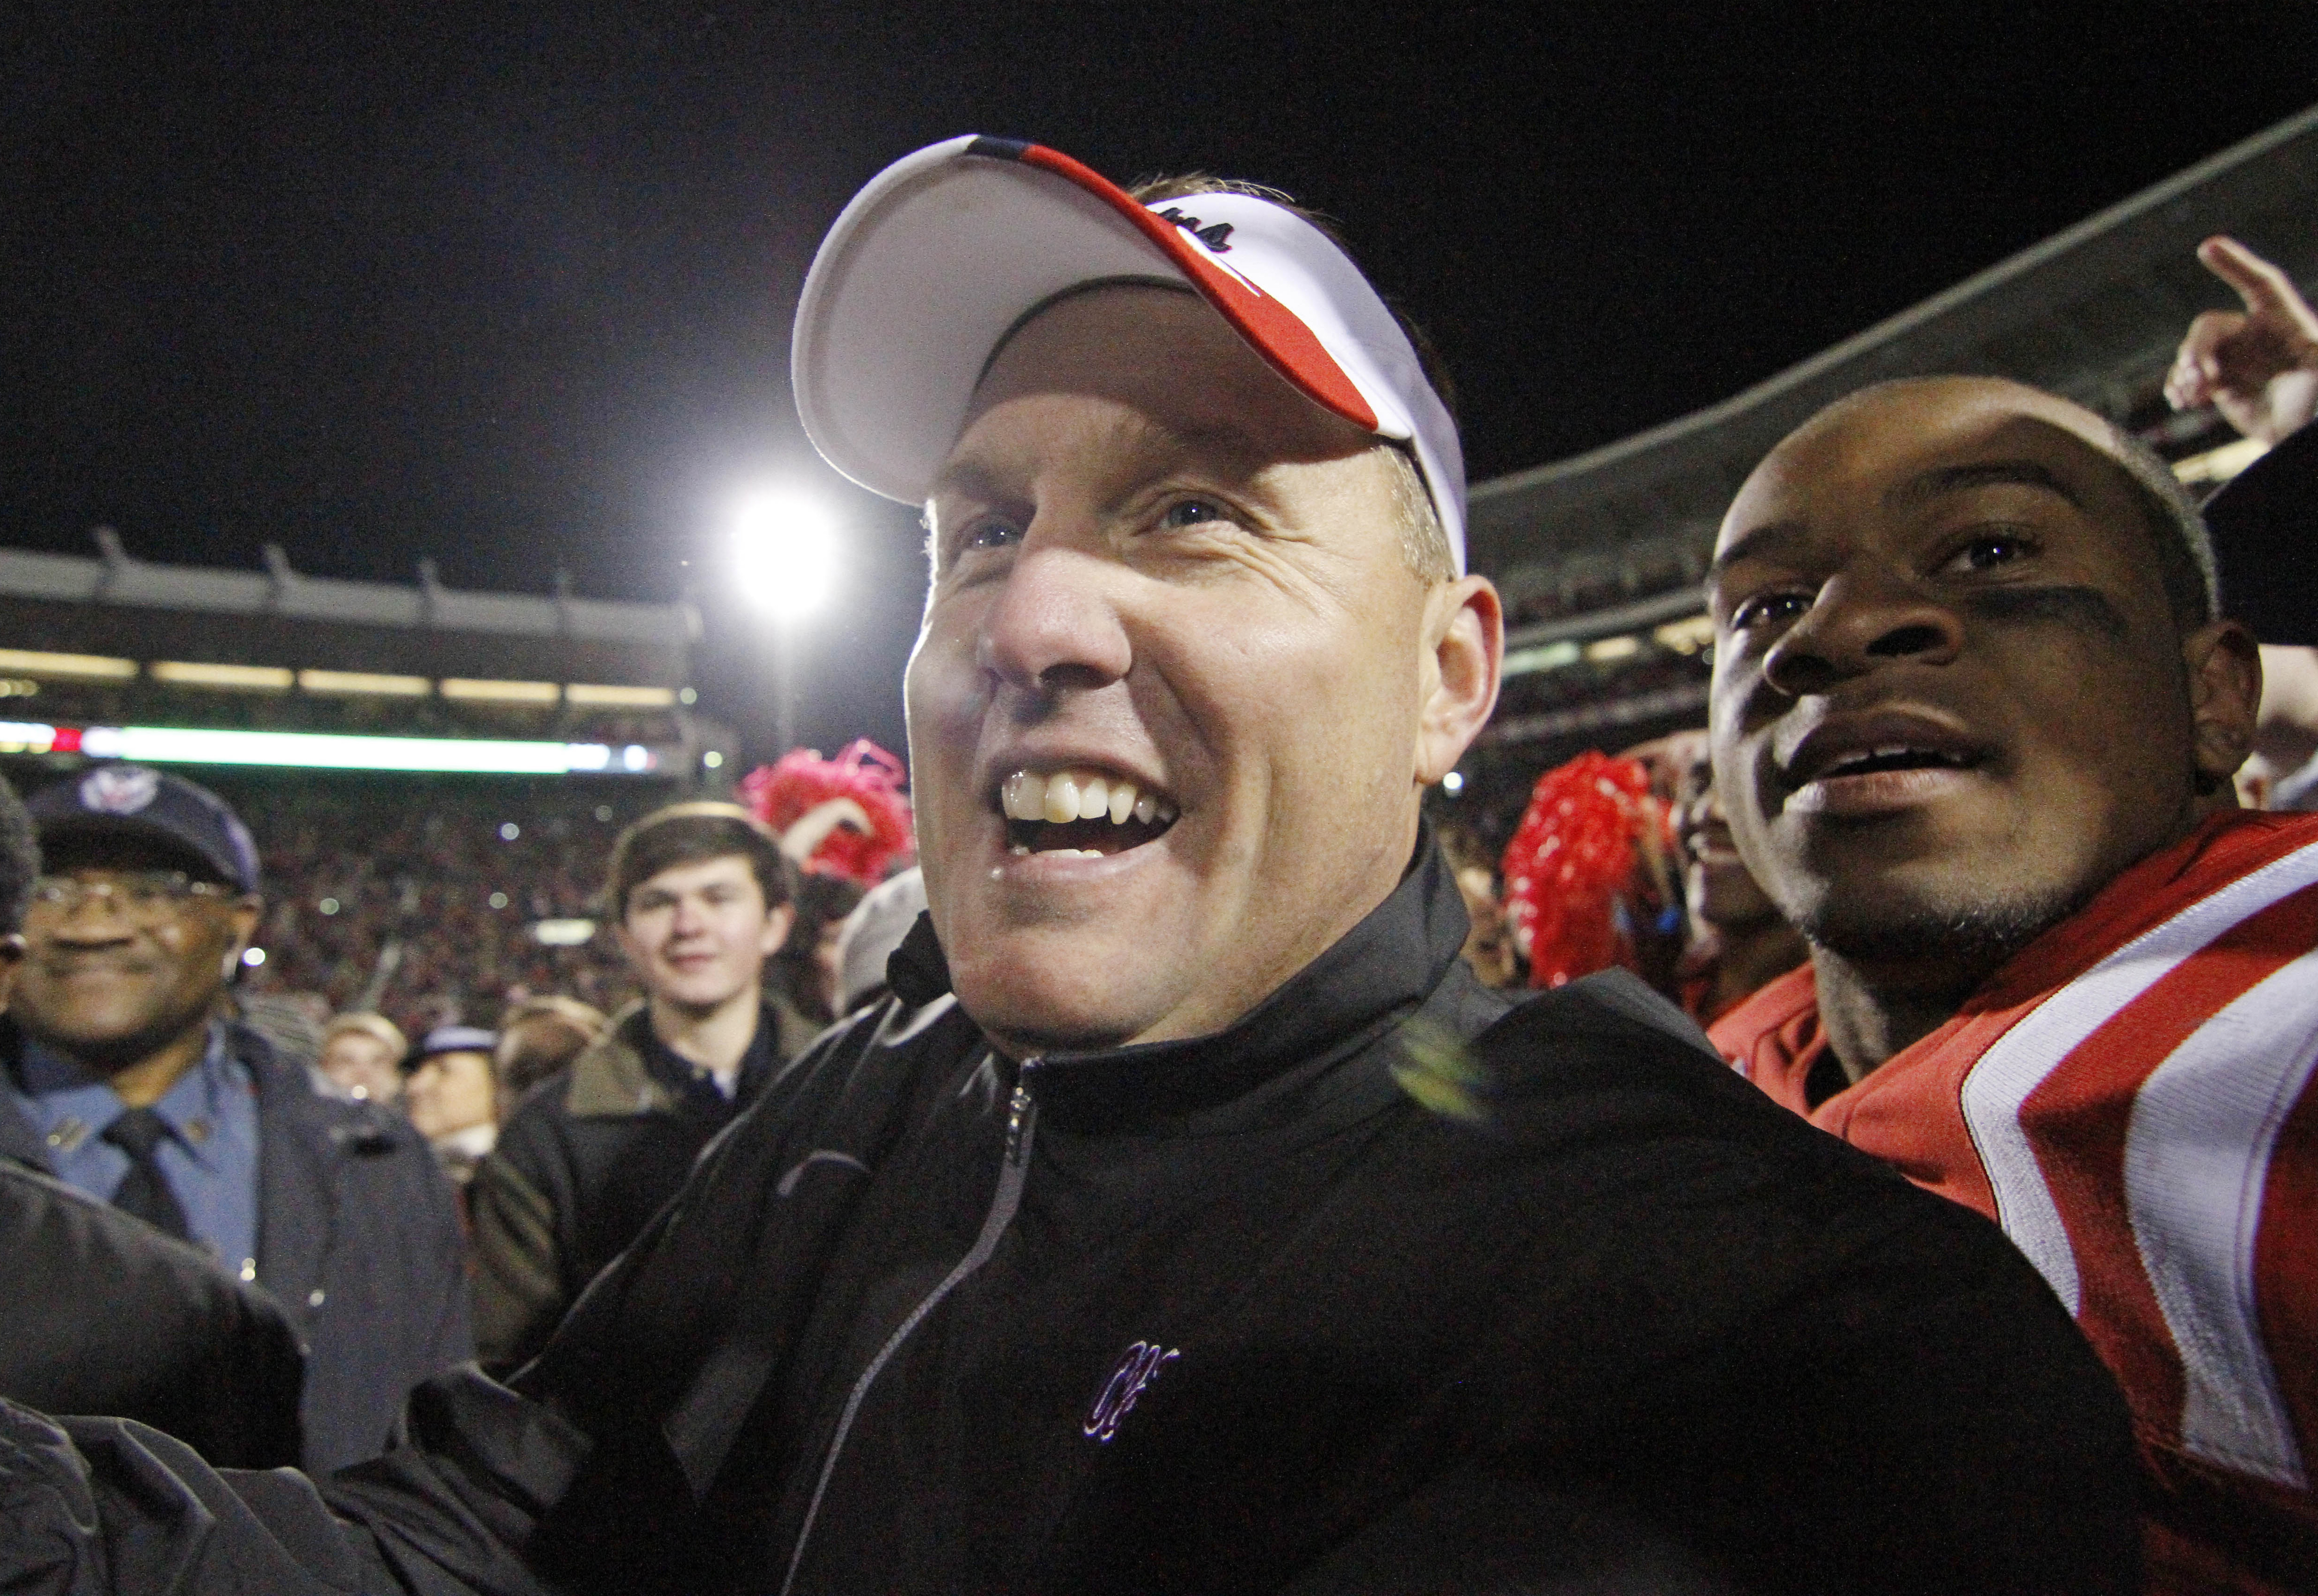 Mississippi coach Hugh Freeze and linebacker Denzel Nkemdiche, right, celebrate after the team's 41-24 win over No. 25 Mississippi State in an NCAA college football game in Oxford, Miss., Saturday, Nov. 24, 2012.  (AP Photo/Rogelio V. Solis)